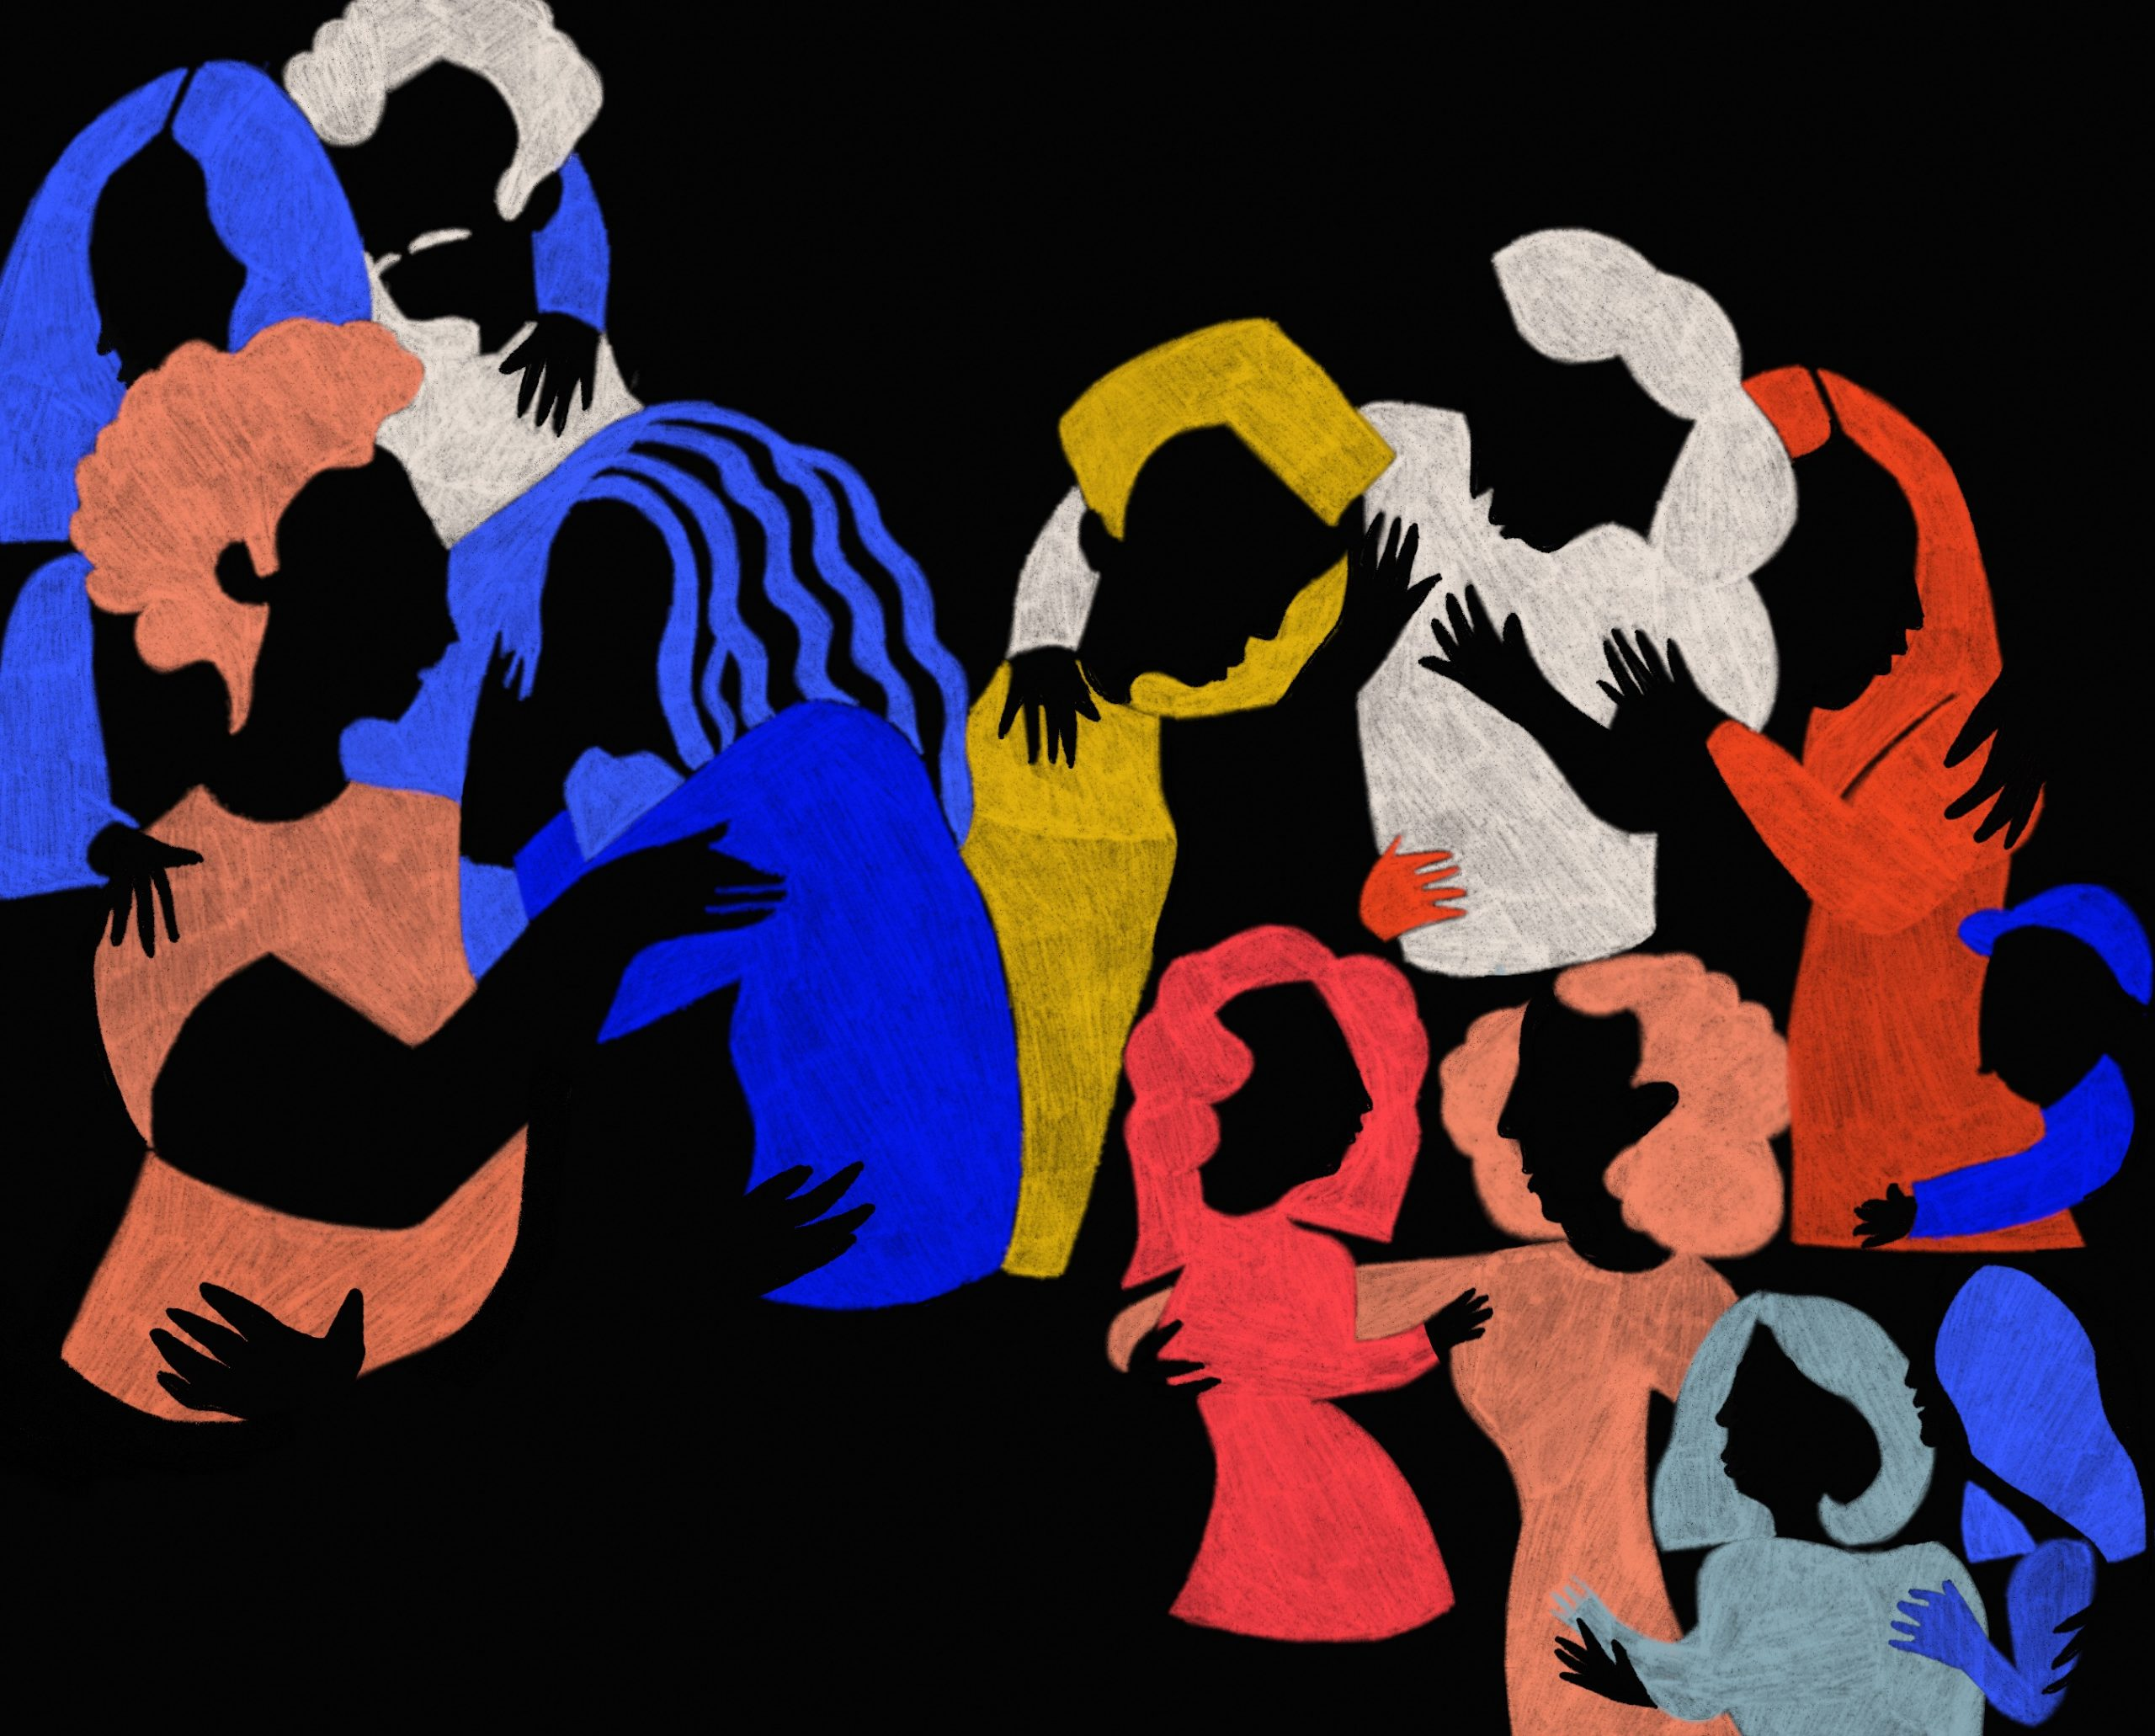 Illustration of people embracing one another